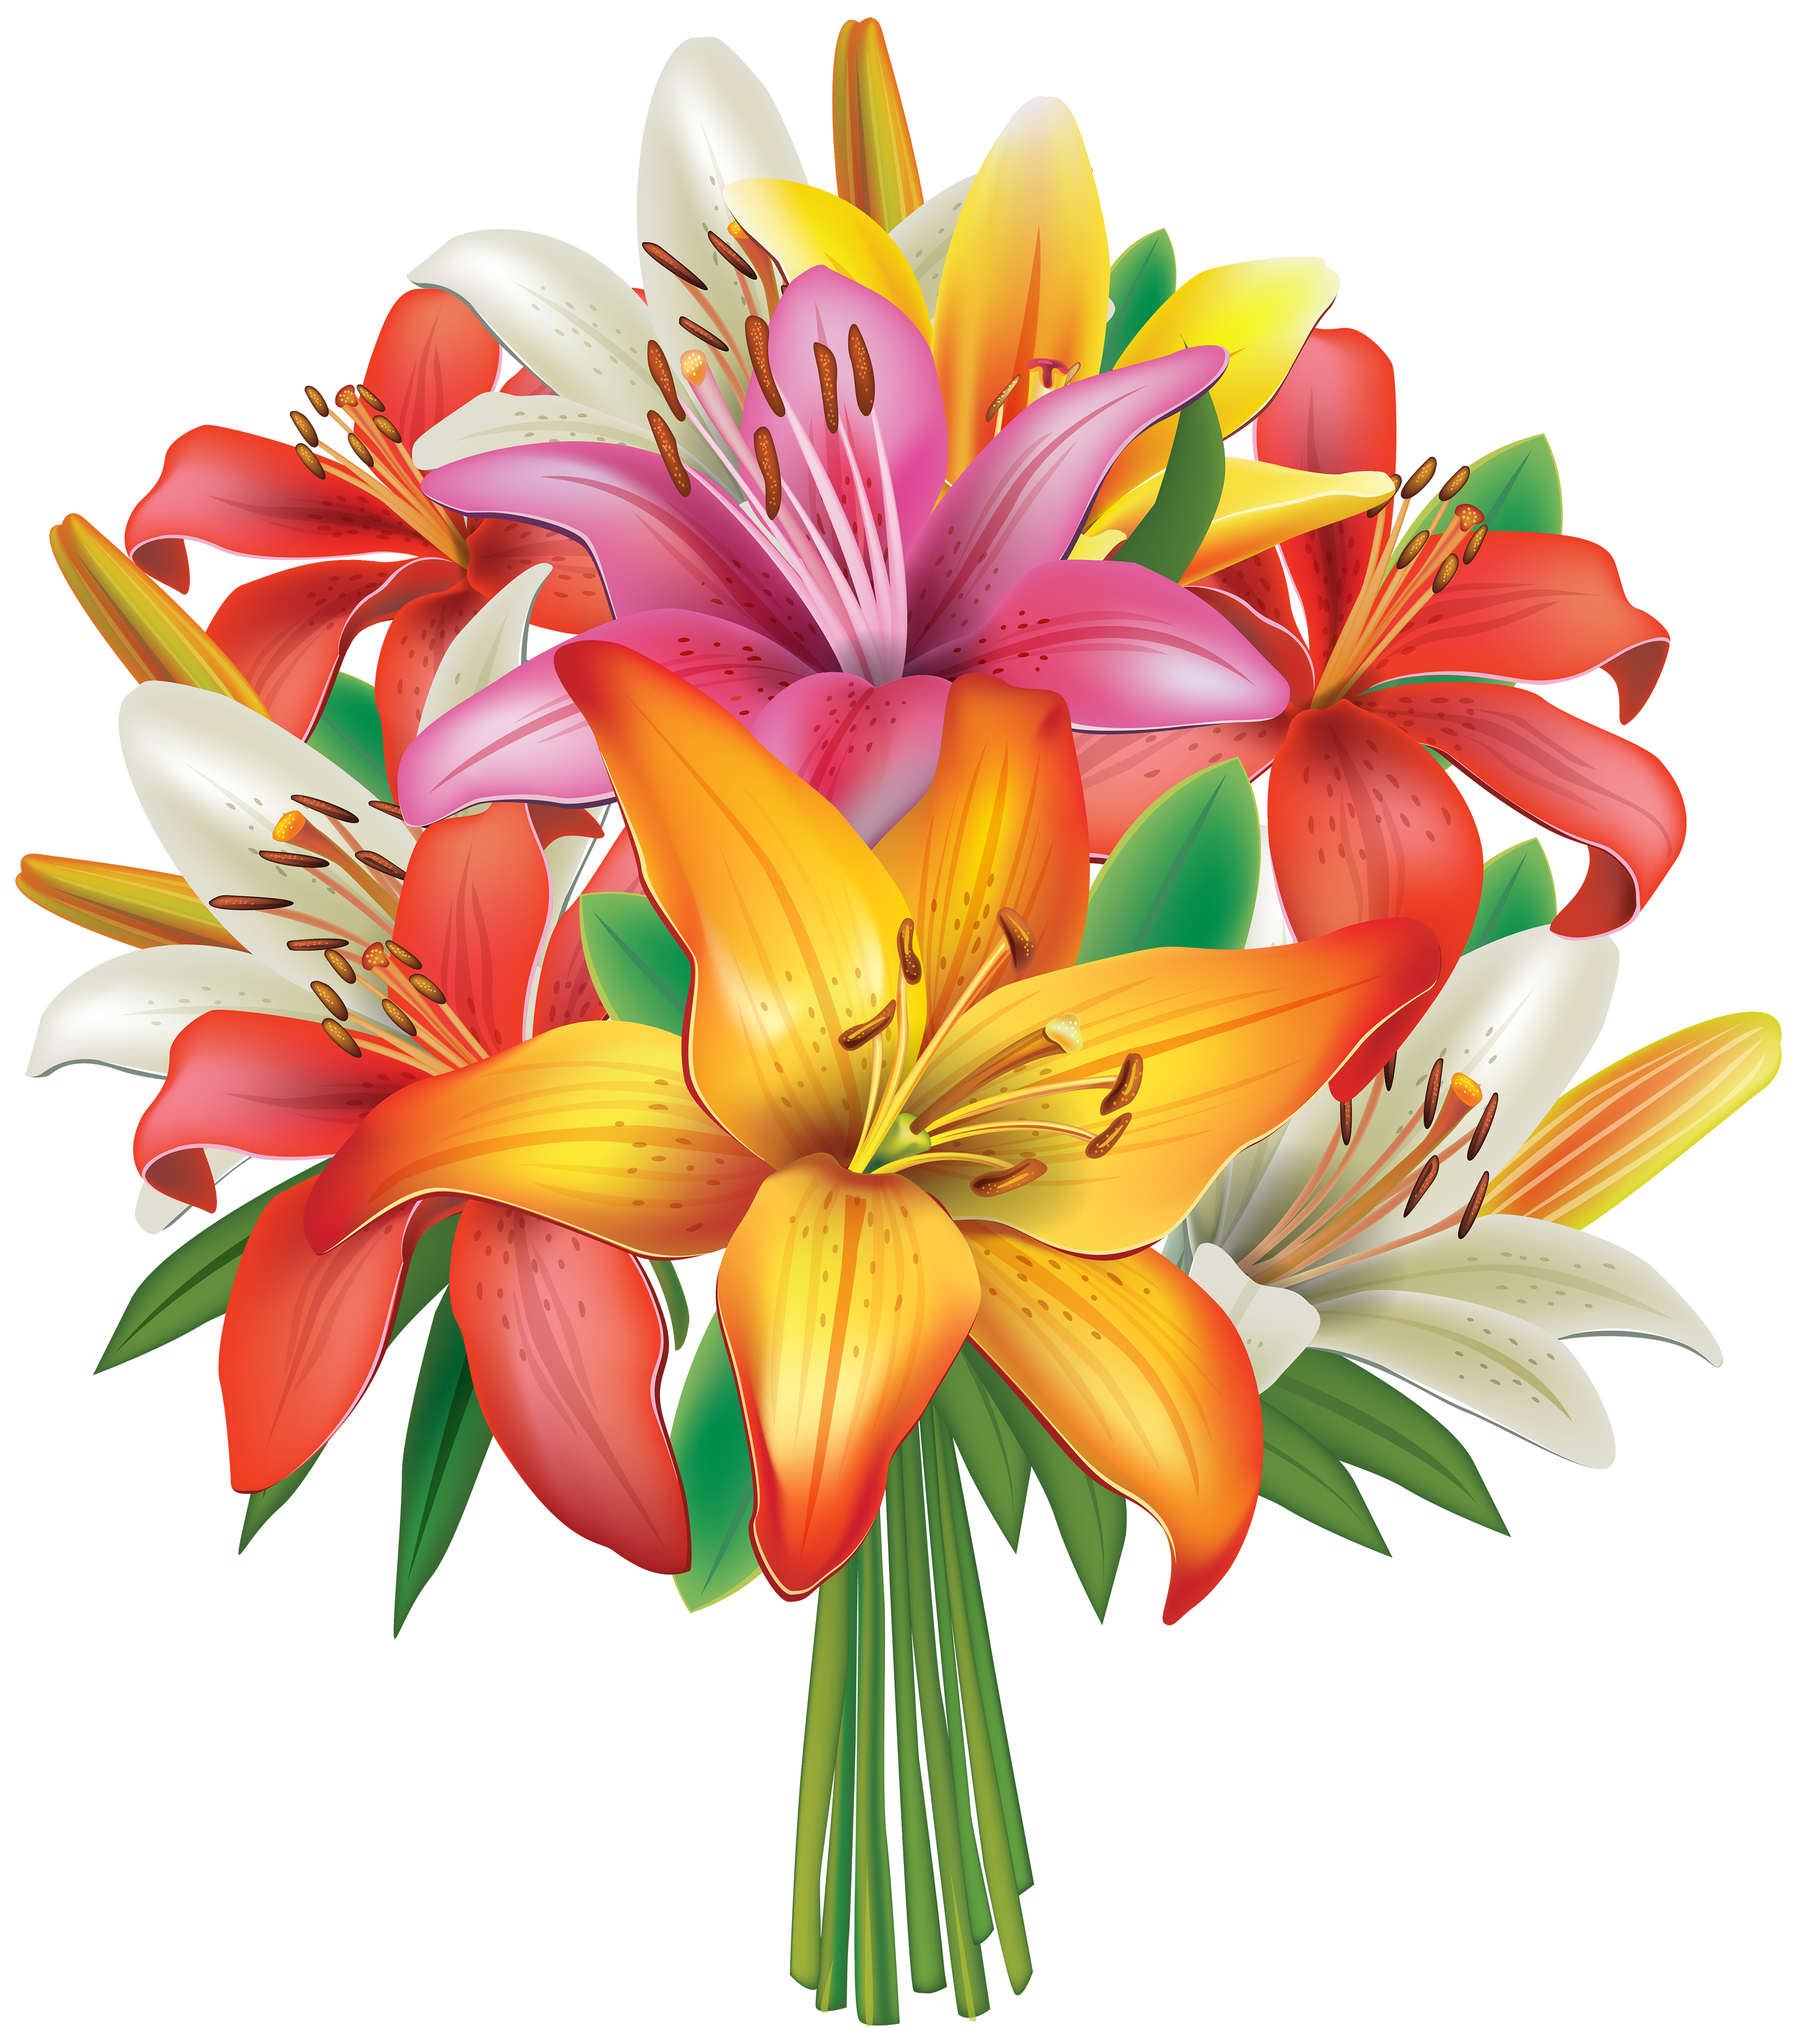 Lilies Flowers Bouquet Png Clipart Image 862930 Png